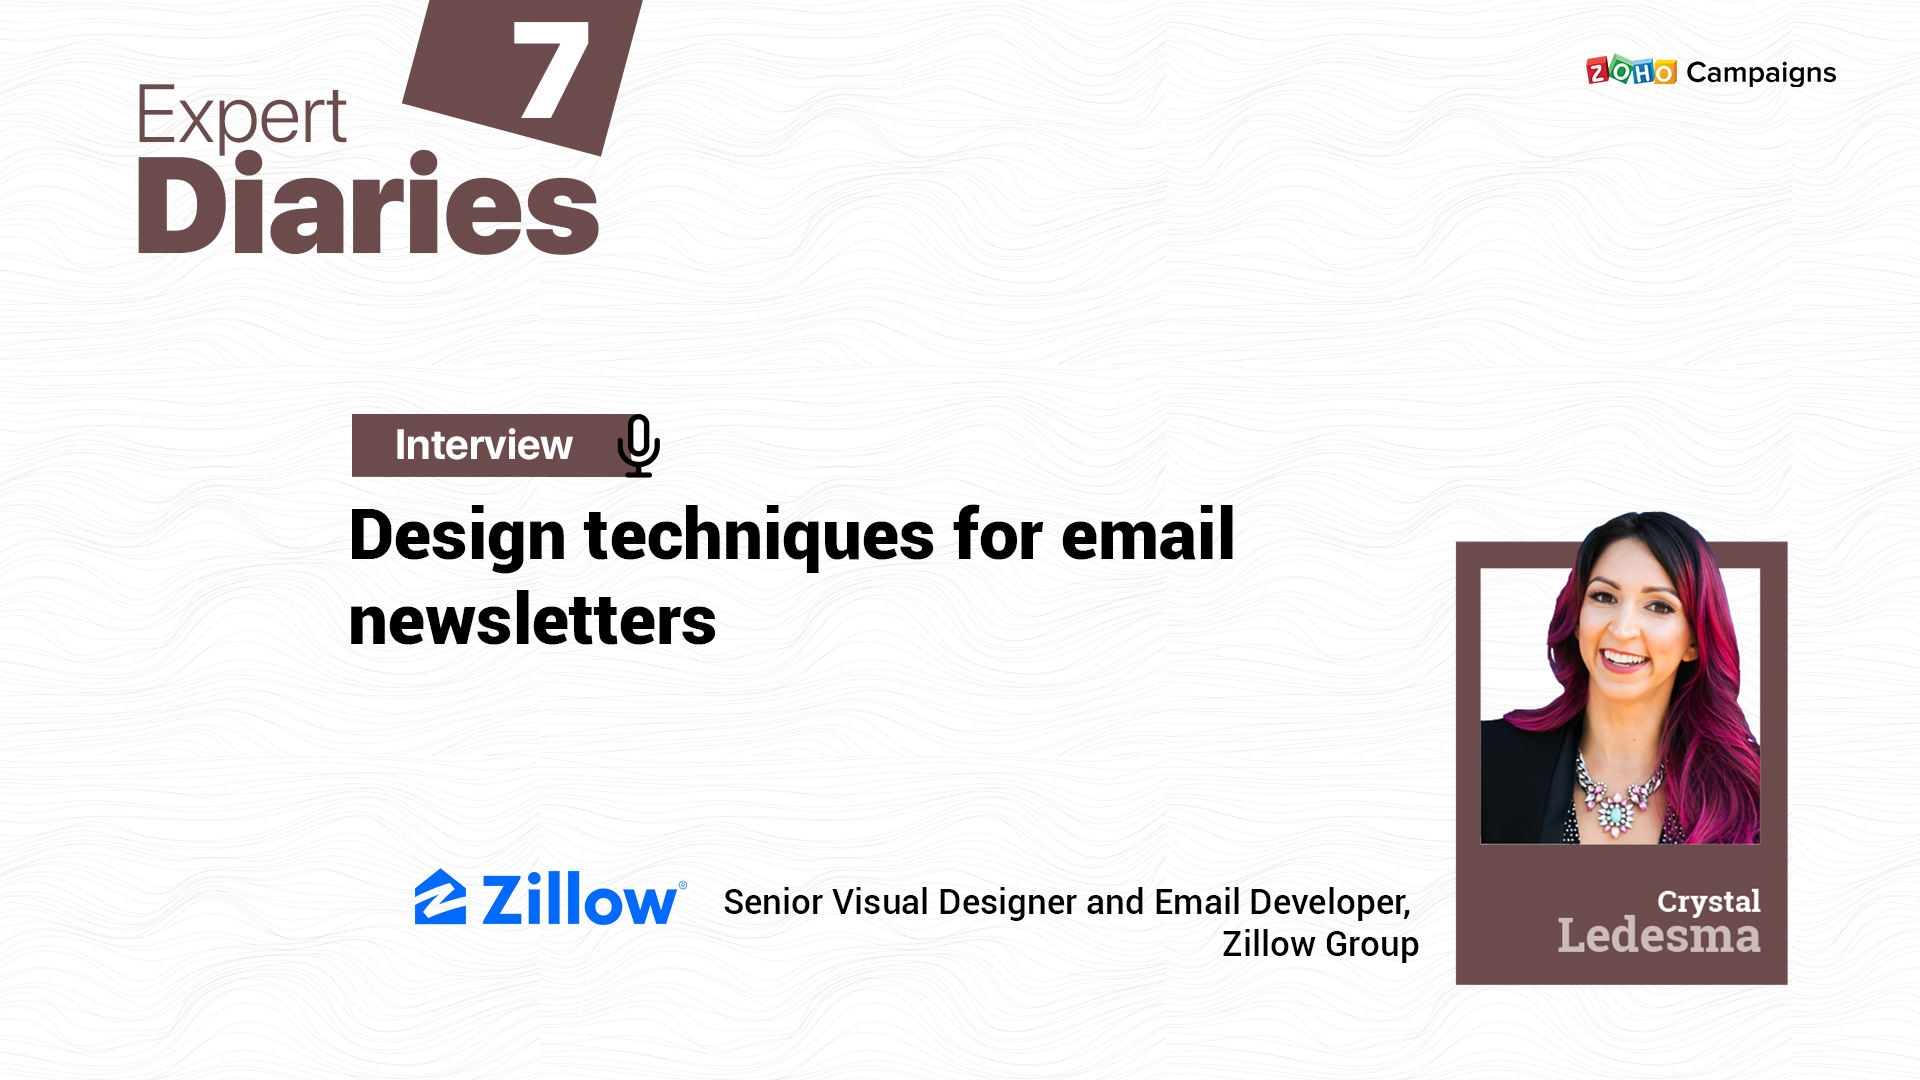 Design techniques for email newsletters